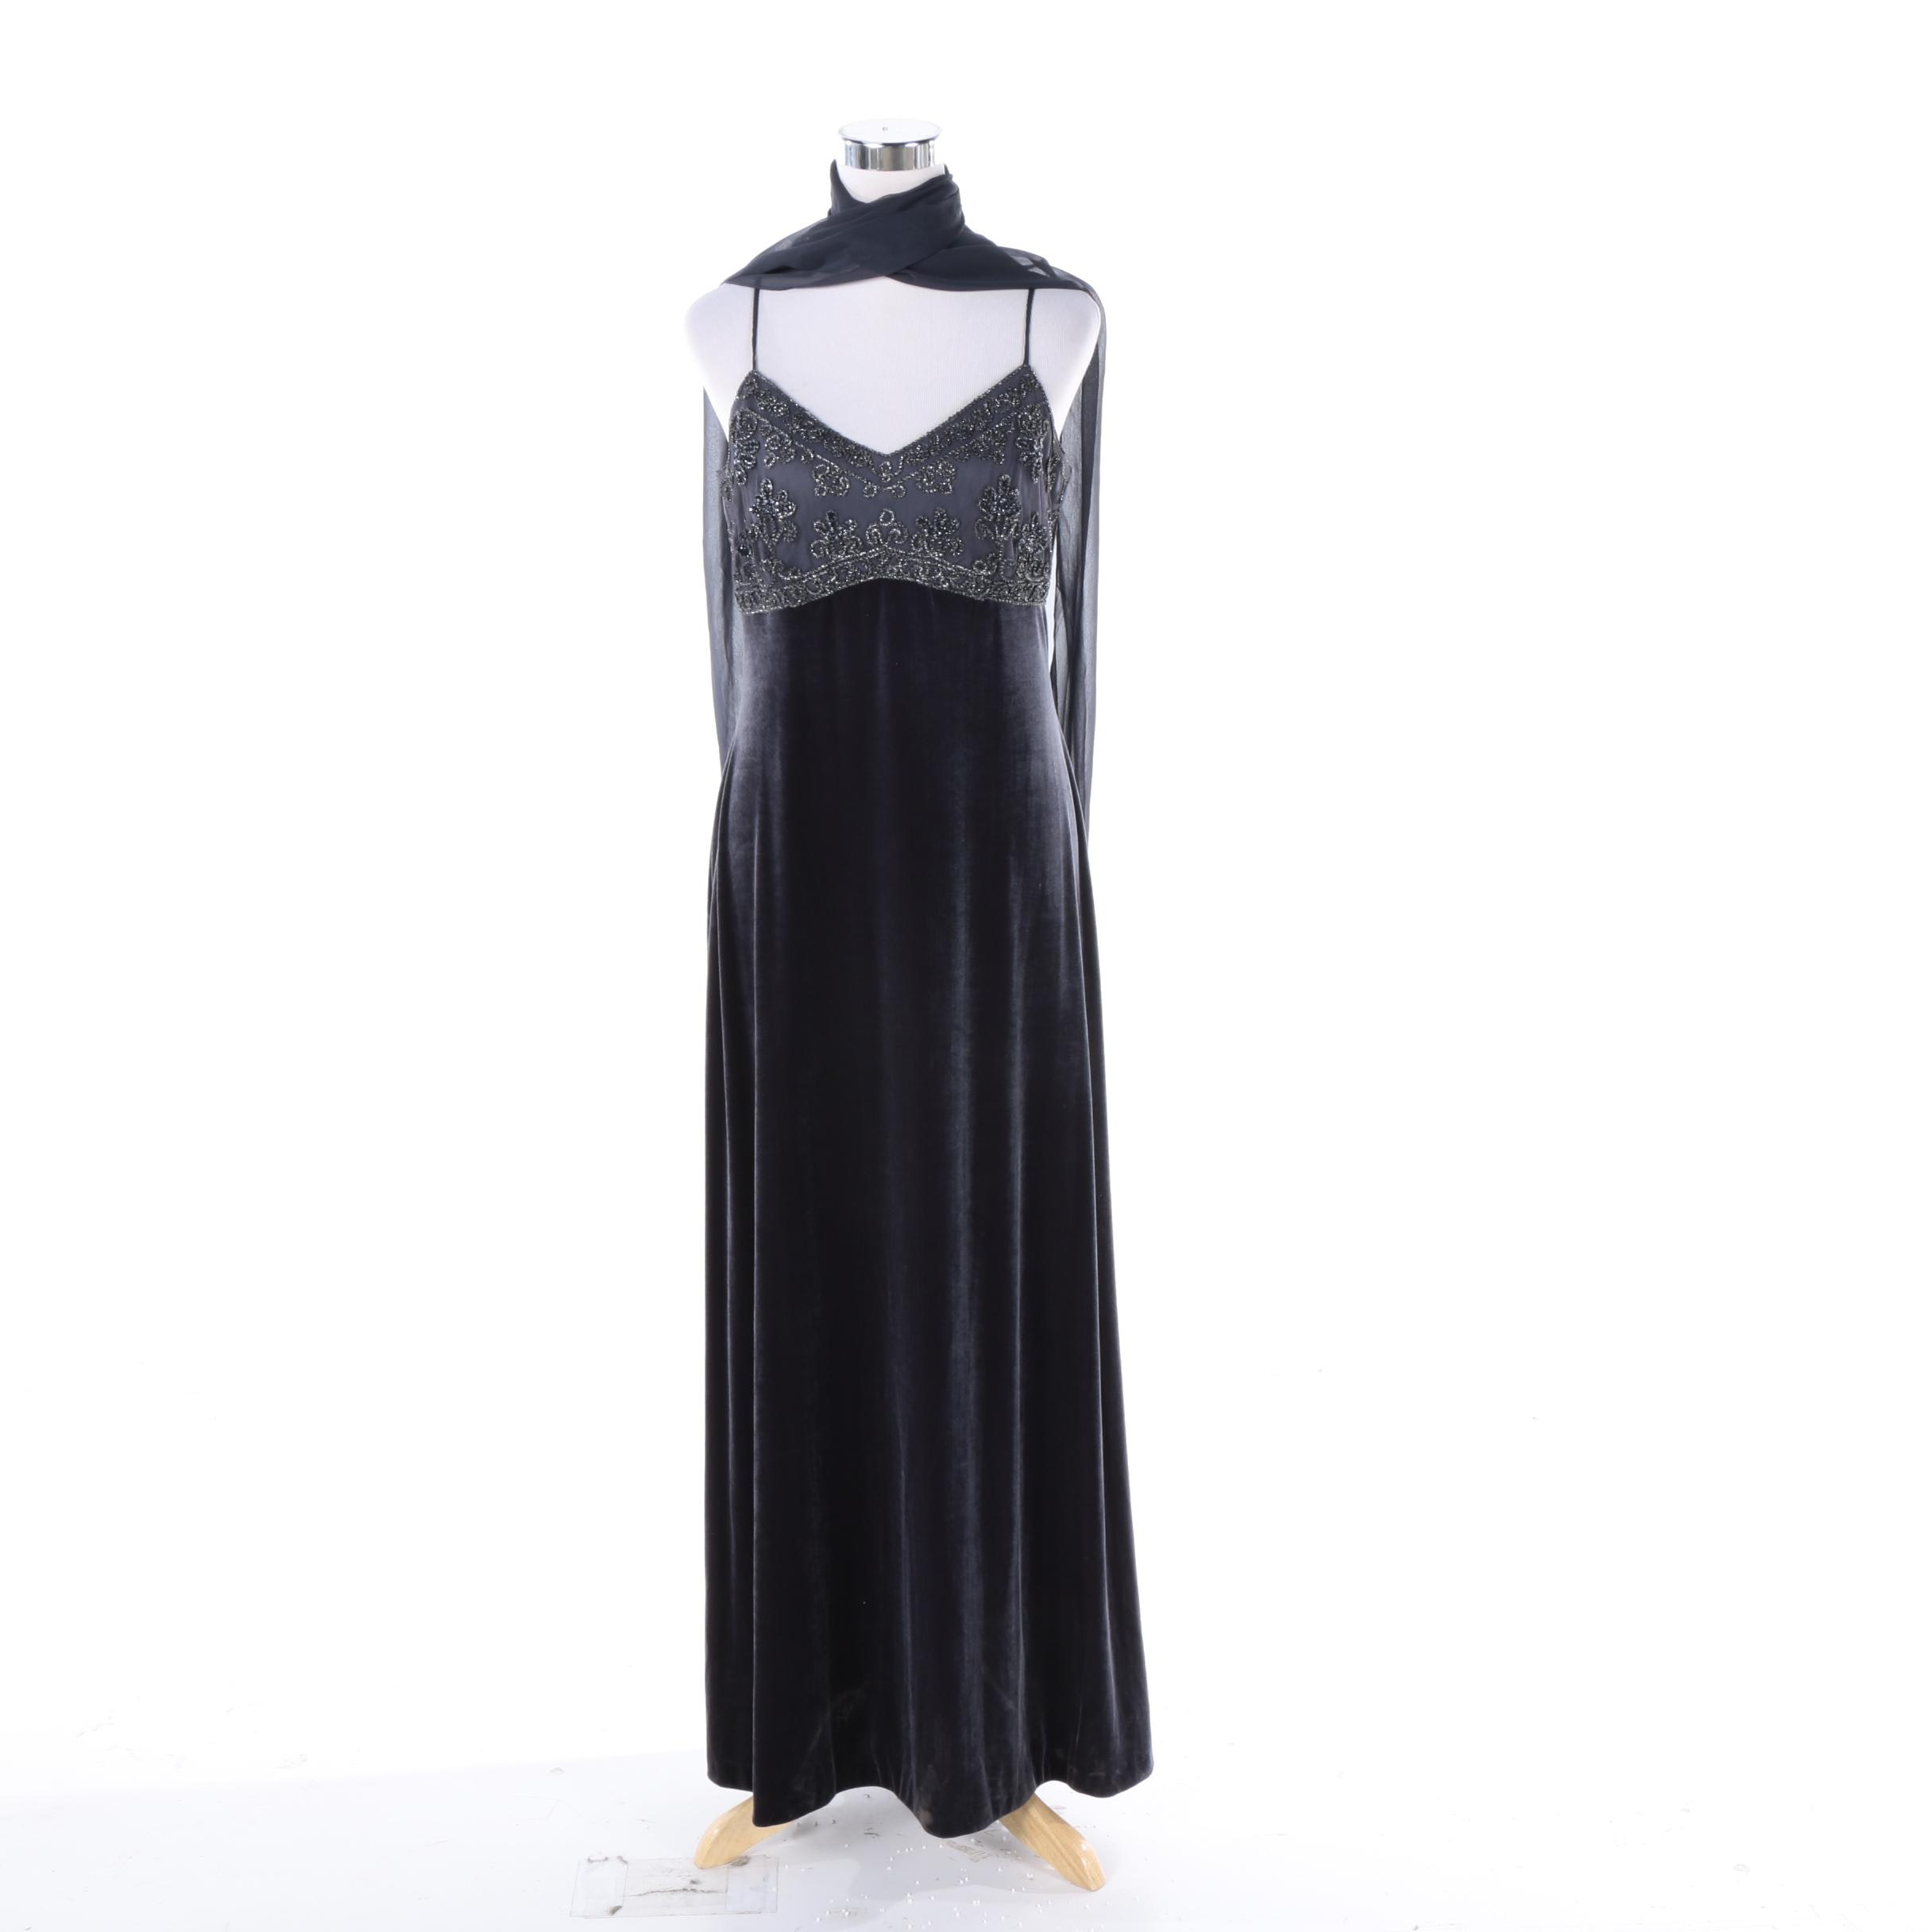 Women's Rhapsody Ltd. Beaded Velvet Evening Gown with Matching Scarf